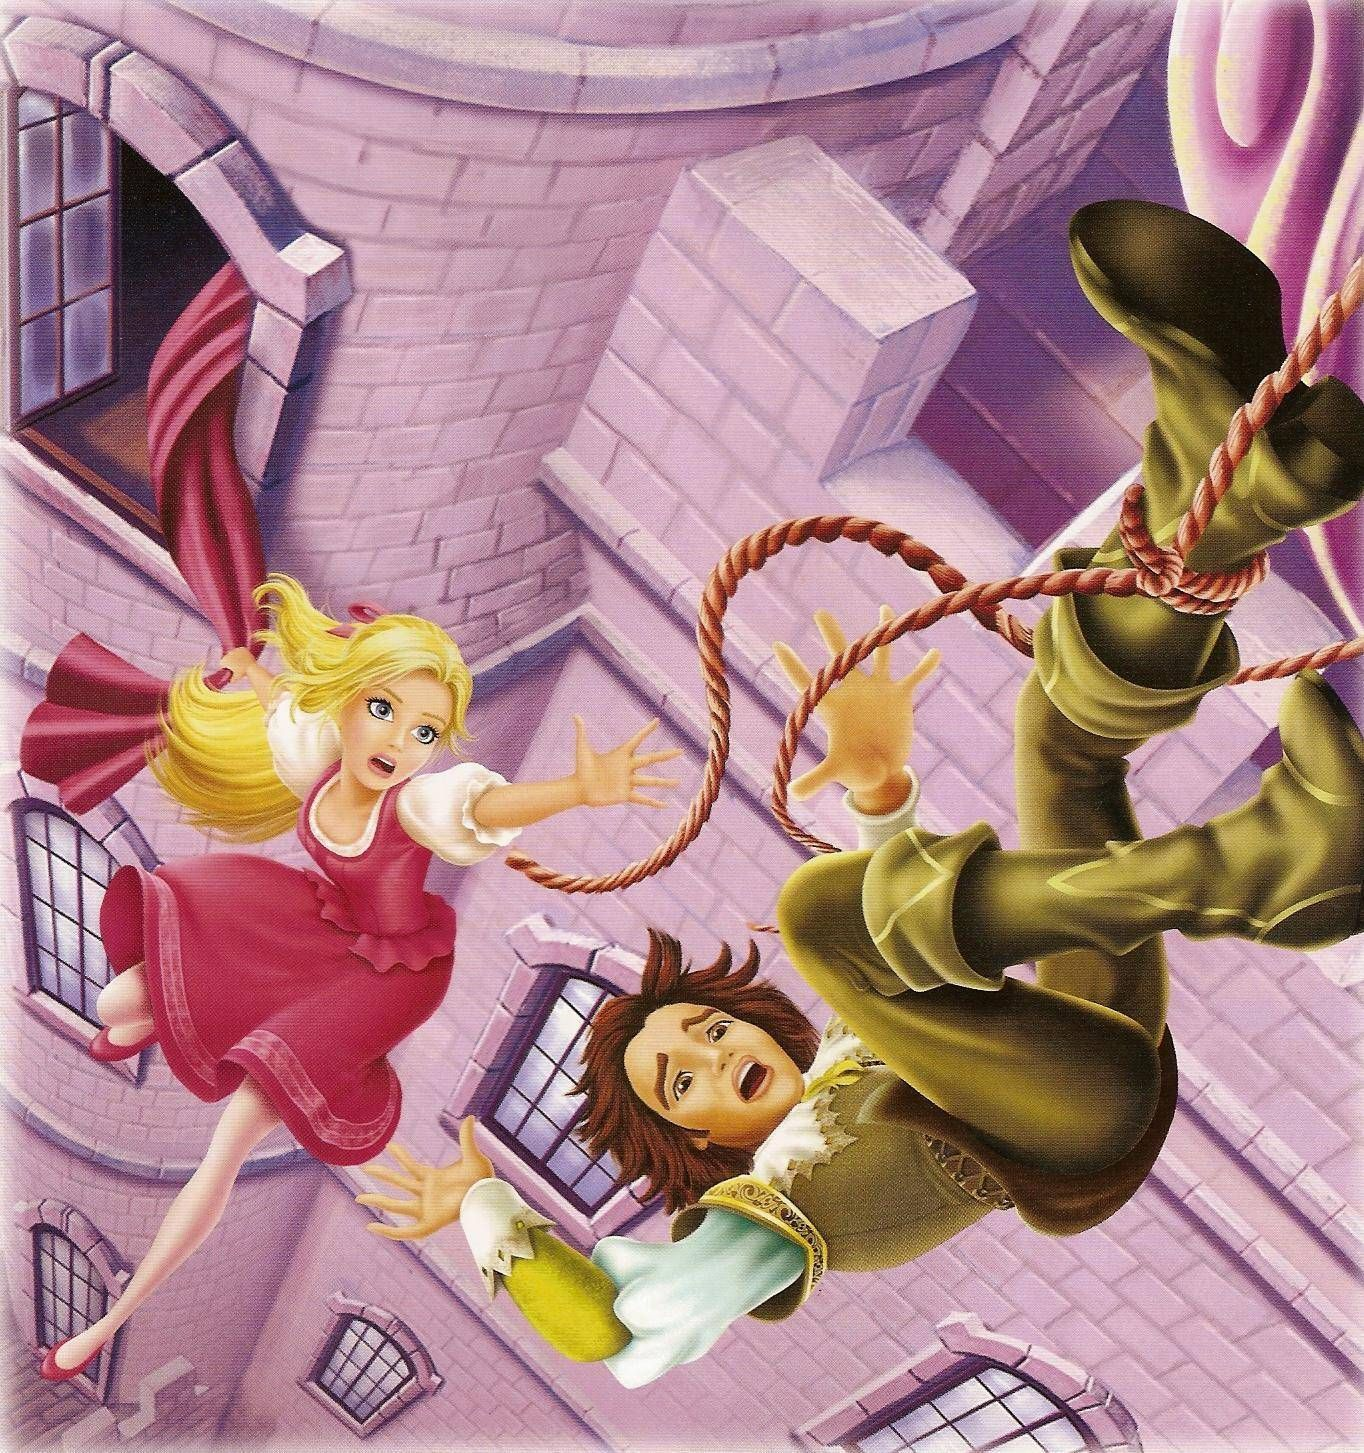 Barbie and the Three Musketeers Wallpaper 16,